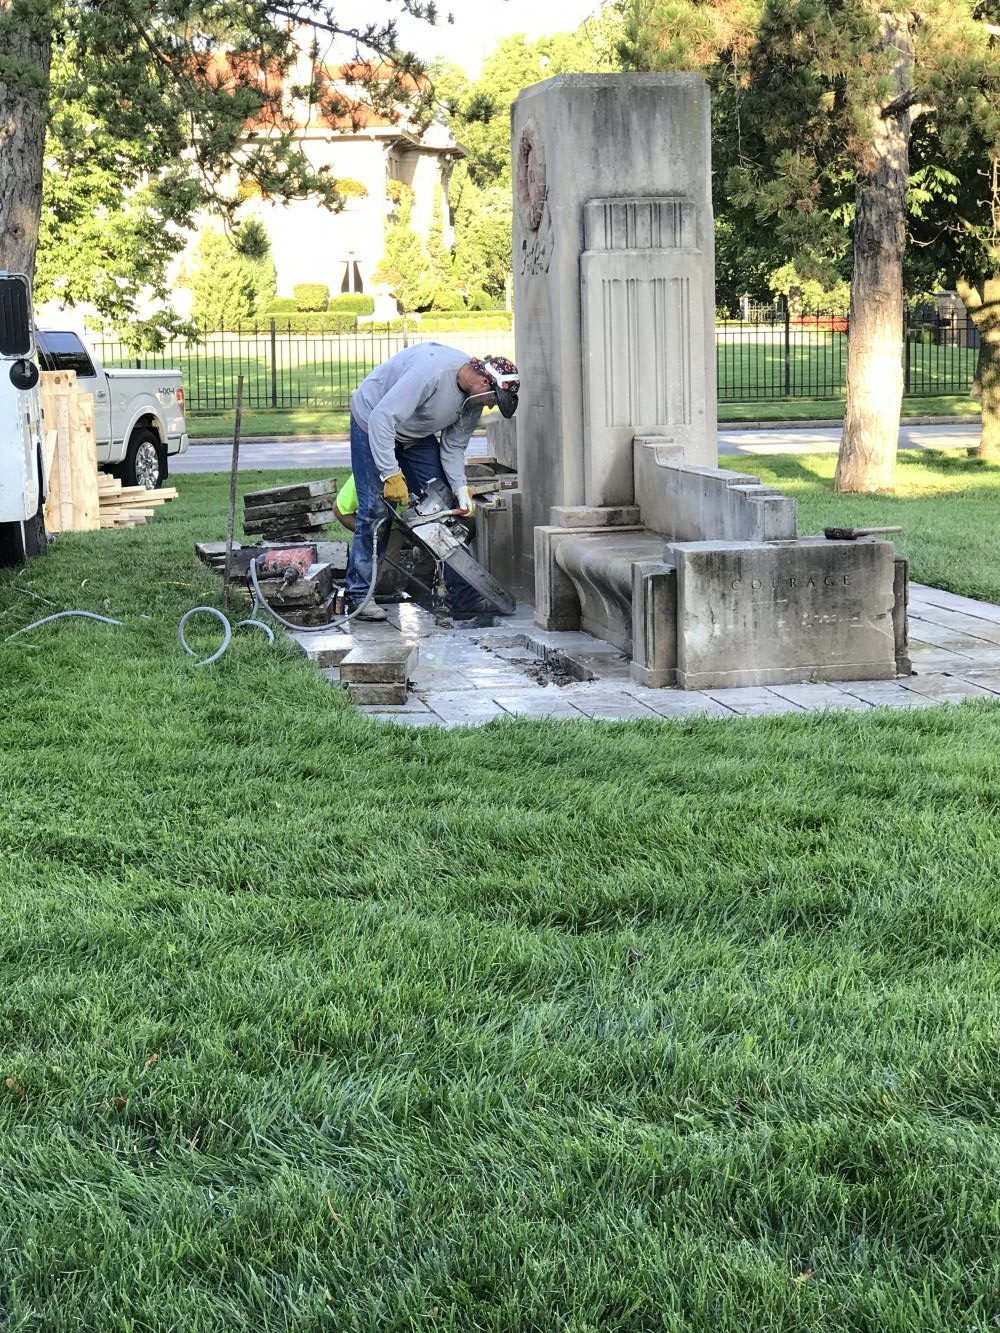 A worker begins to take down the monument on Ward Parkway. photo by Margaux Renee